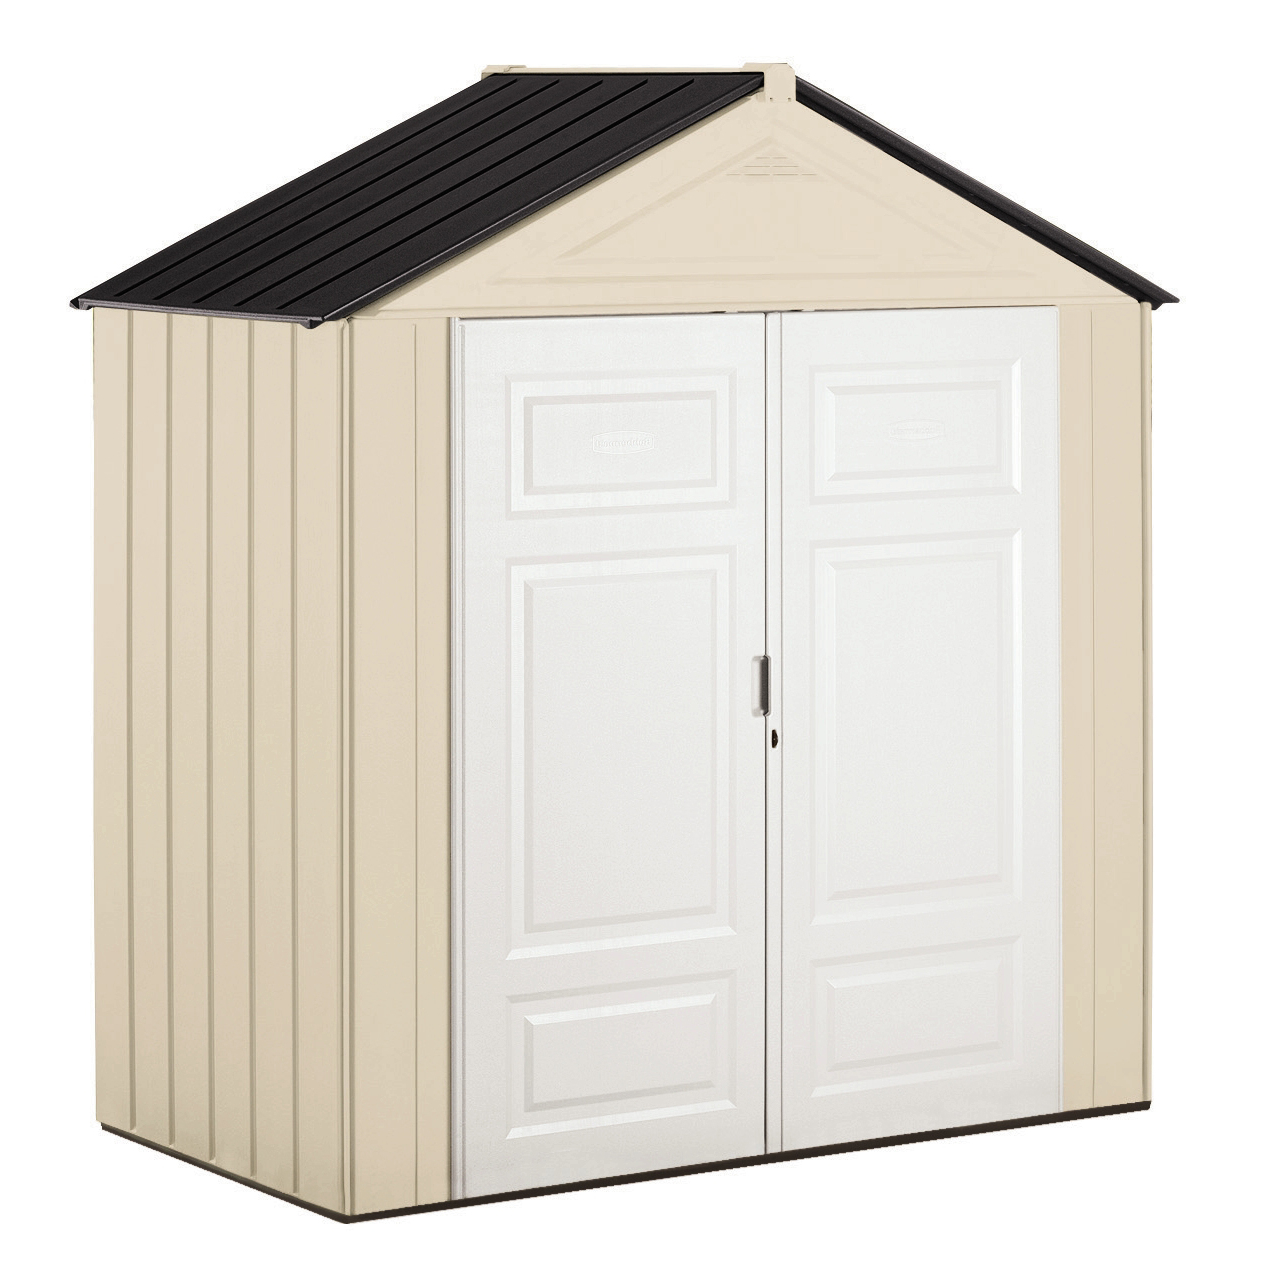 Rubbermaid 1862705 6.75' W X 3.25' D X 7.5' H Shed